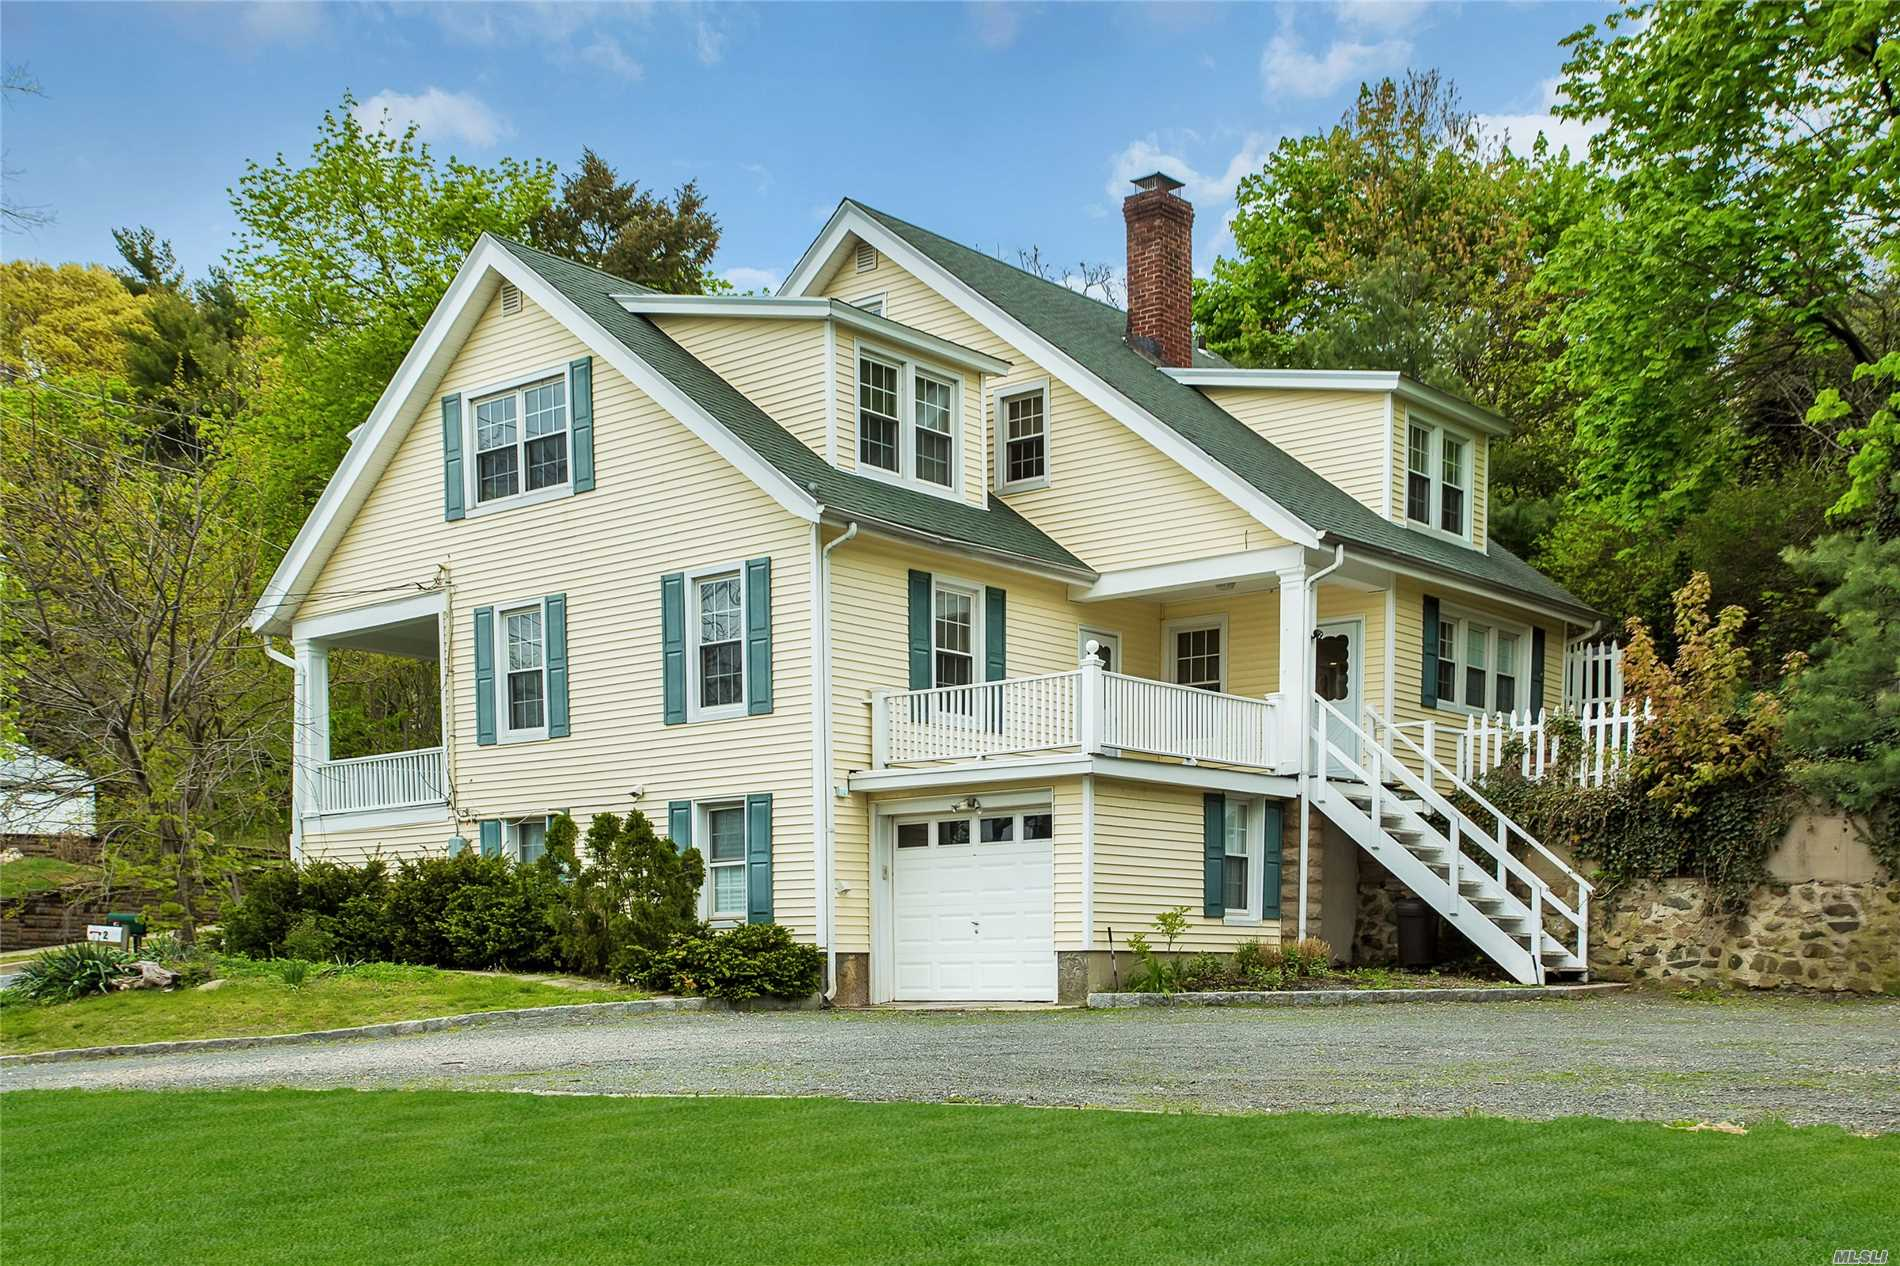 Beautifully Restored Oversized Colonial With A Townhouse Like FeelAll Hardwood Flooring, Updated Kitchen And Baths, Central Air, Attic And Basement Storage, Deck Off Kitchen, Porch Off Living Room, 1 Car Garage, Views Of Huntington Harbor, Turn Key And Immaculate! Non Smoking